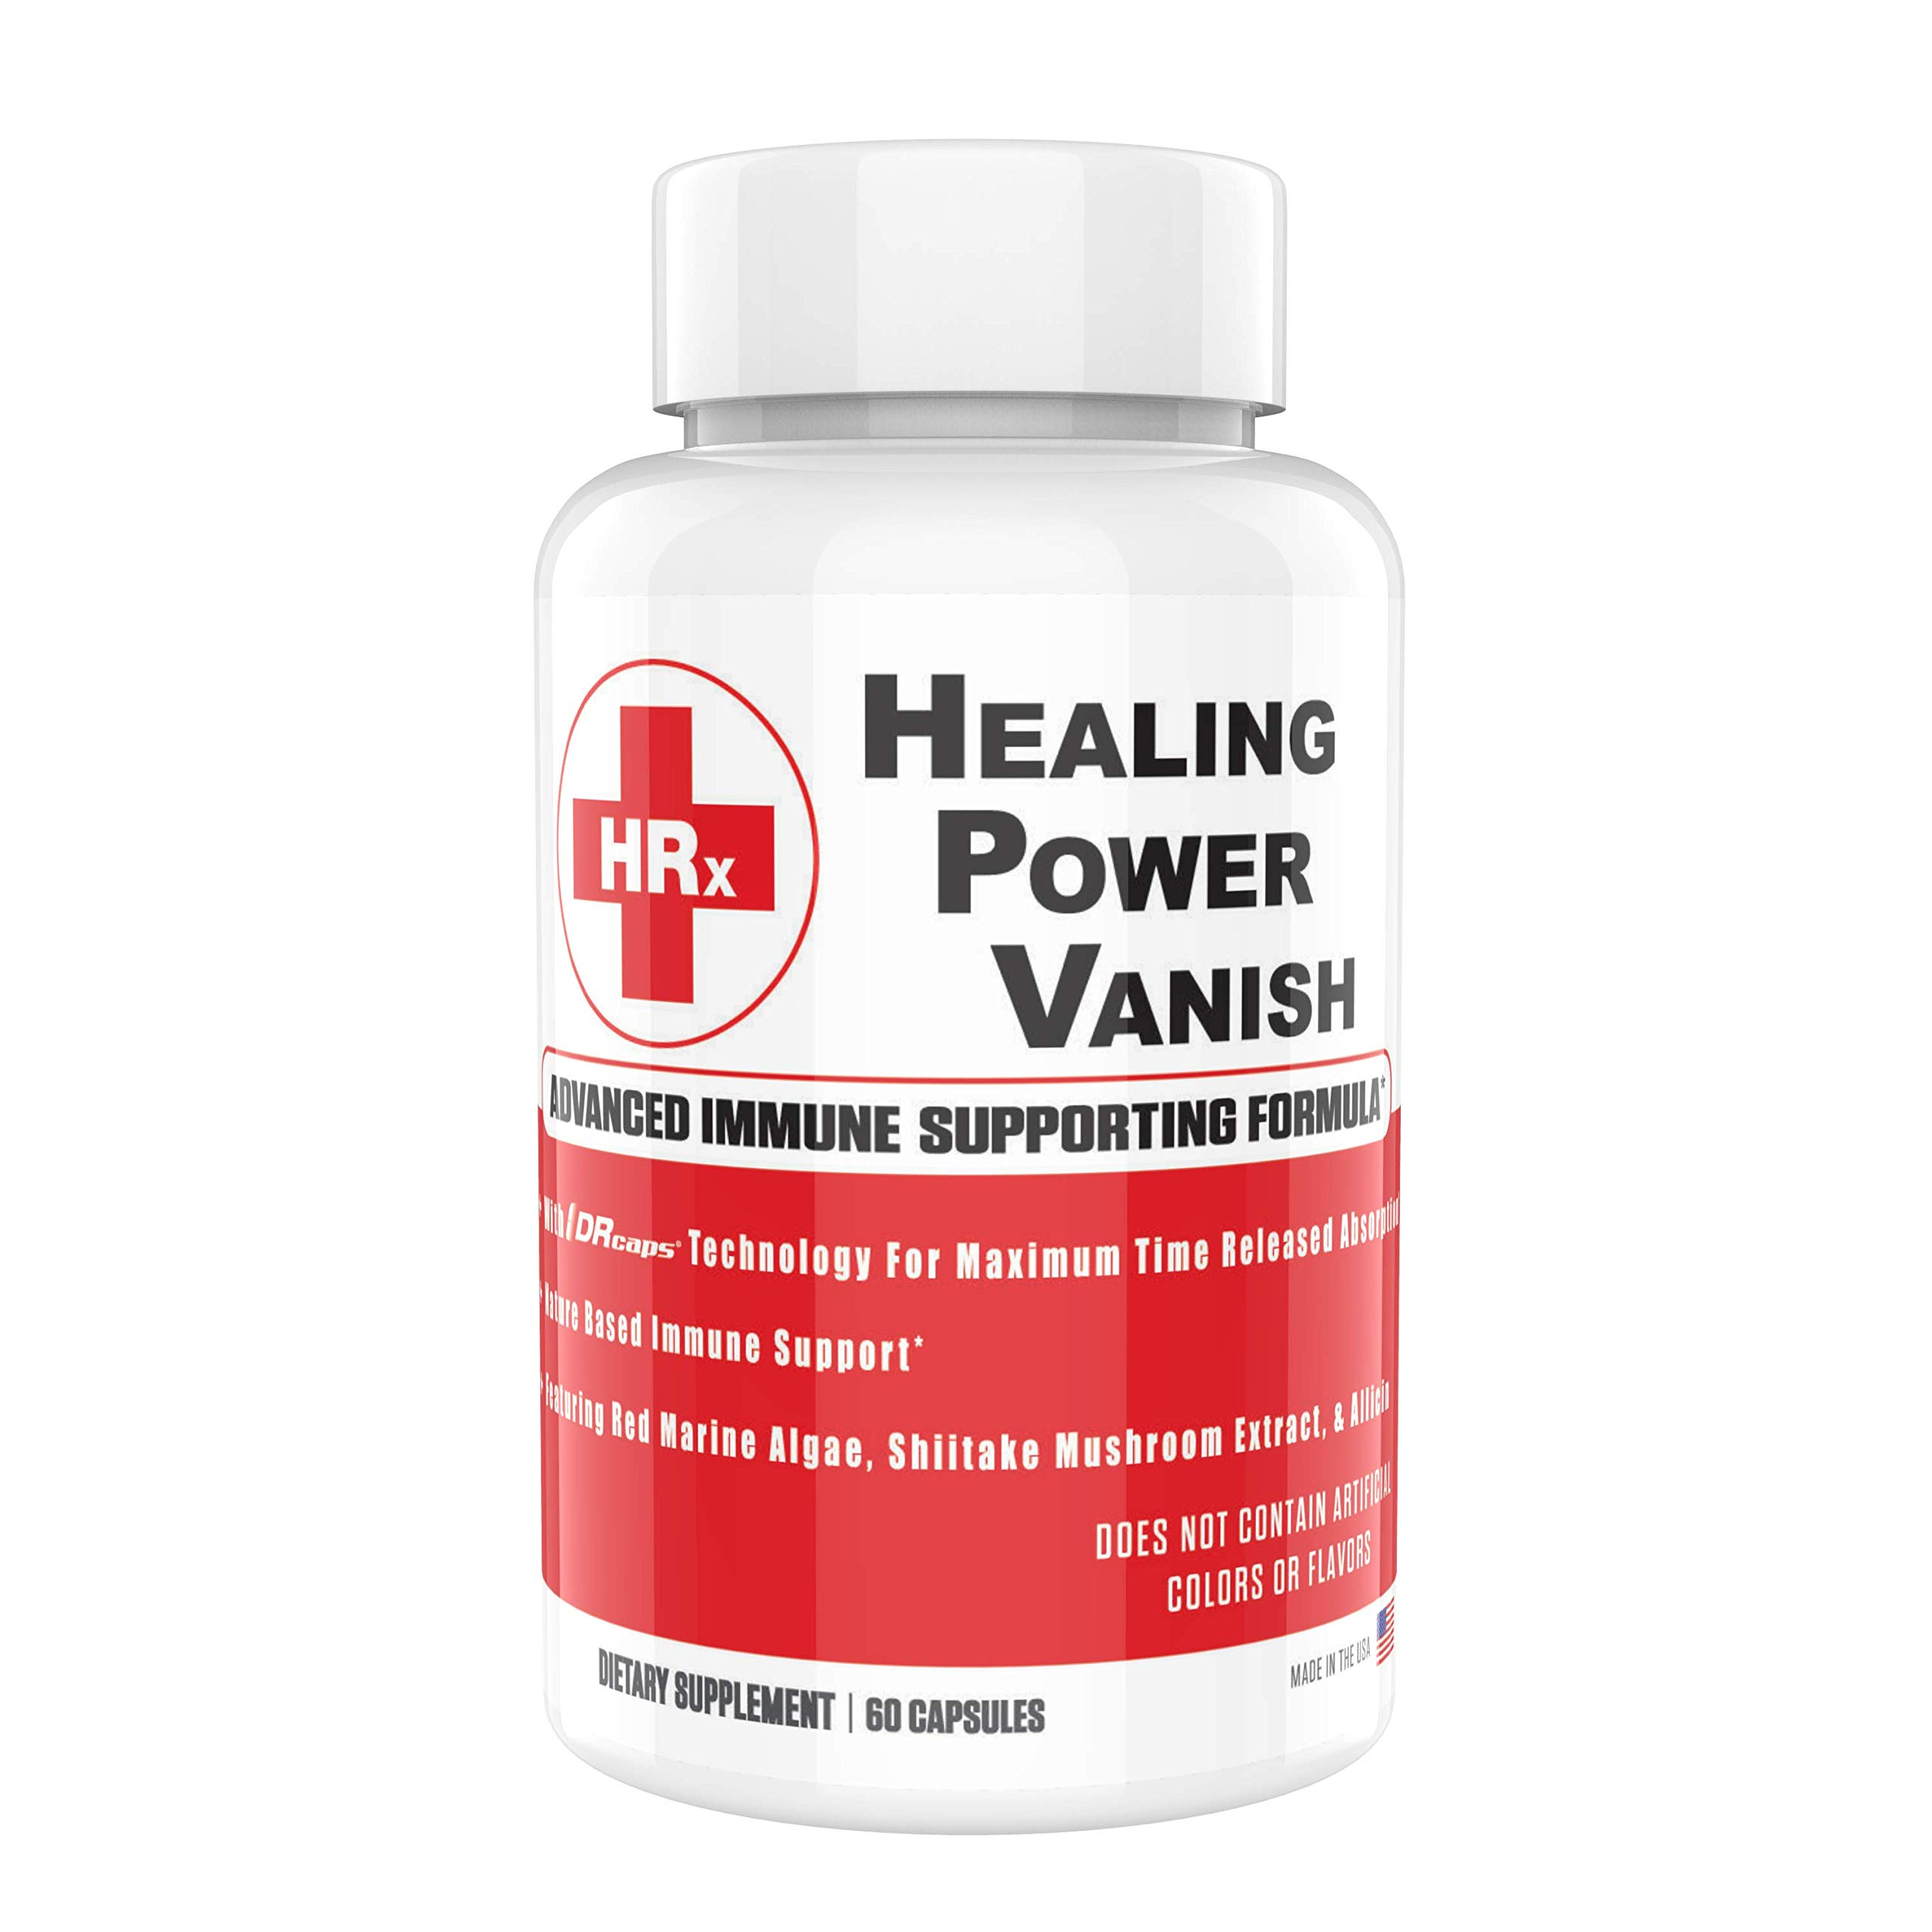 Healing Power Vanish HPV Support Supplements Supports Healthy Immune Response 1450mg - Pure Shiitake Mushroom Extract & Red Marine Algae Supplements - Immune System Booster - 60 Capsules